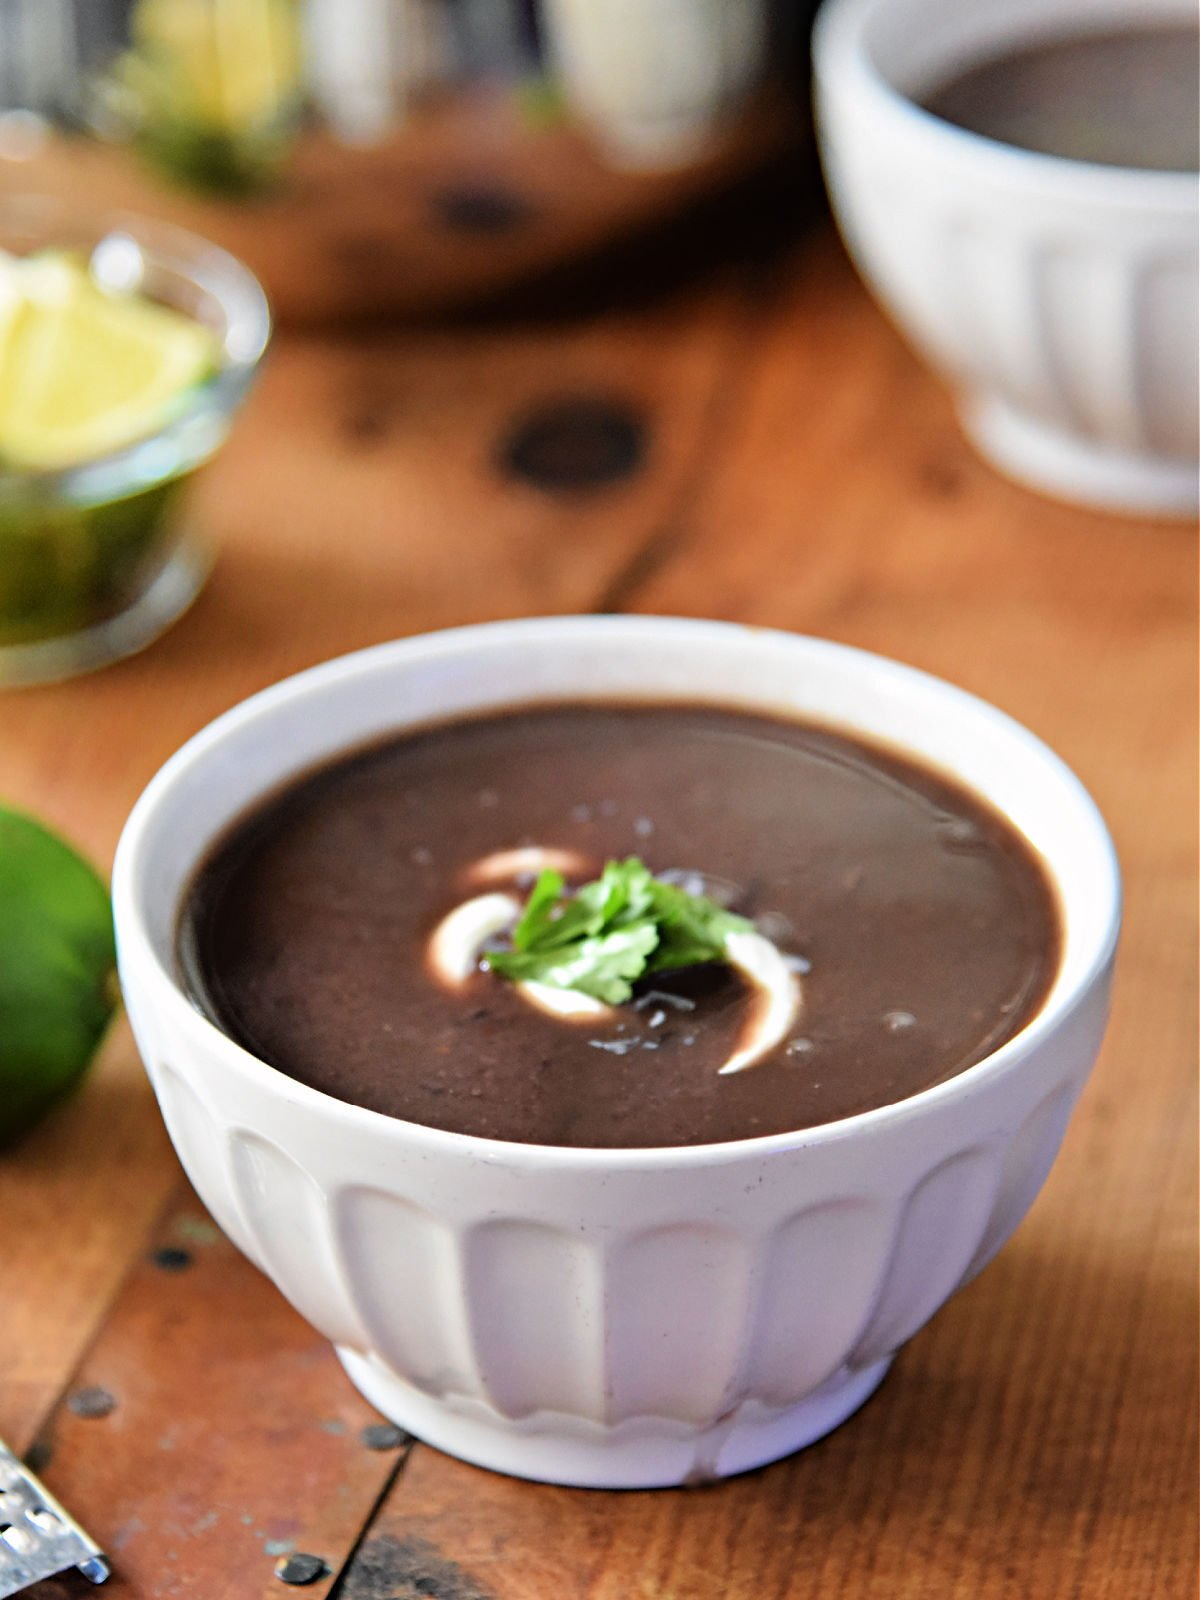 White bowl filled with black bean soup topped with sour cream and cilantro.